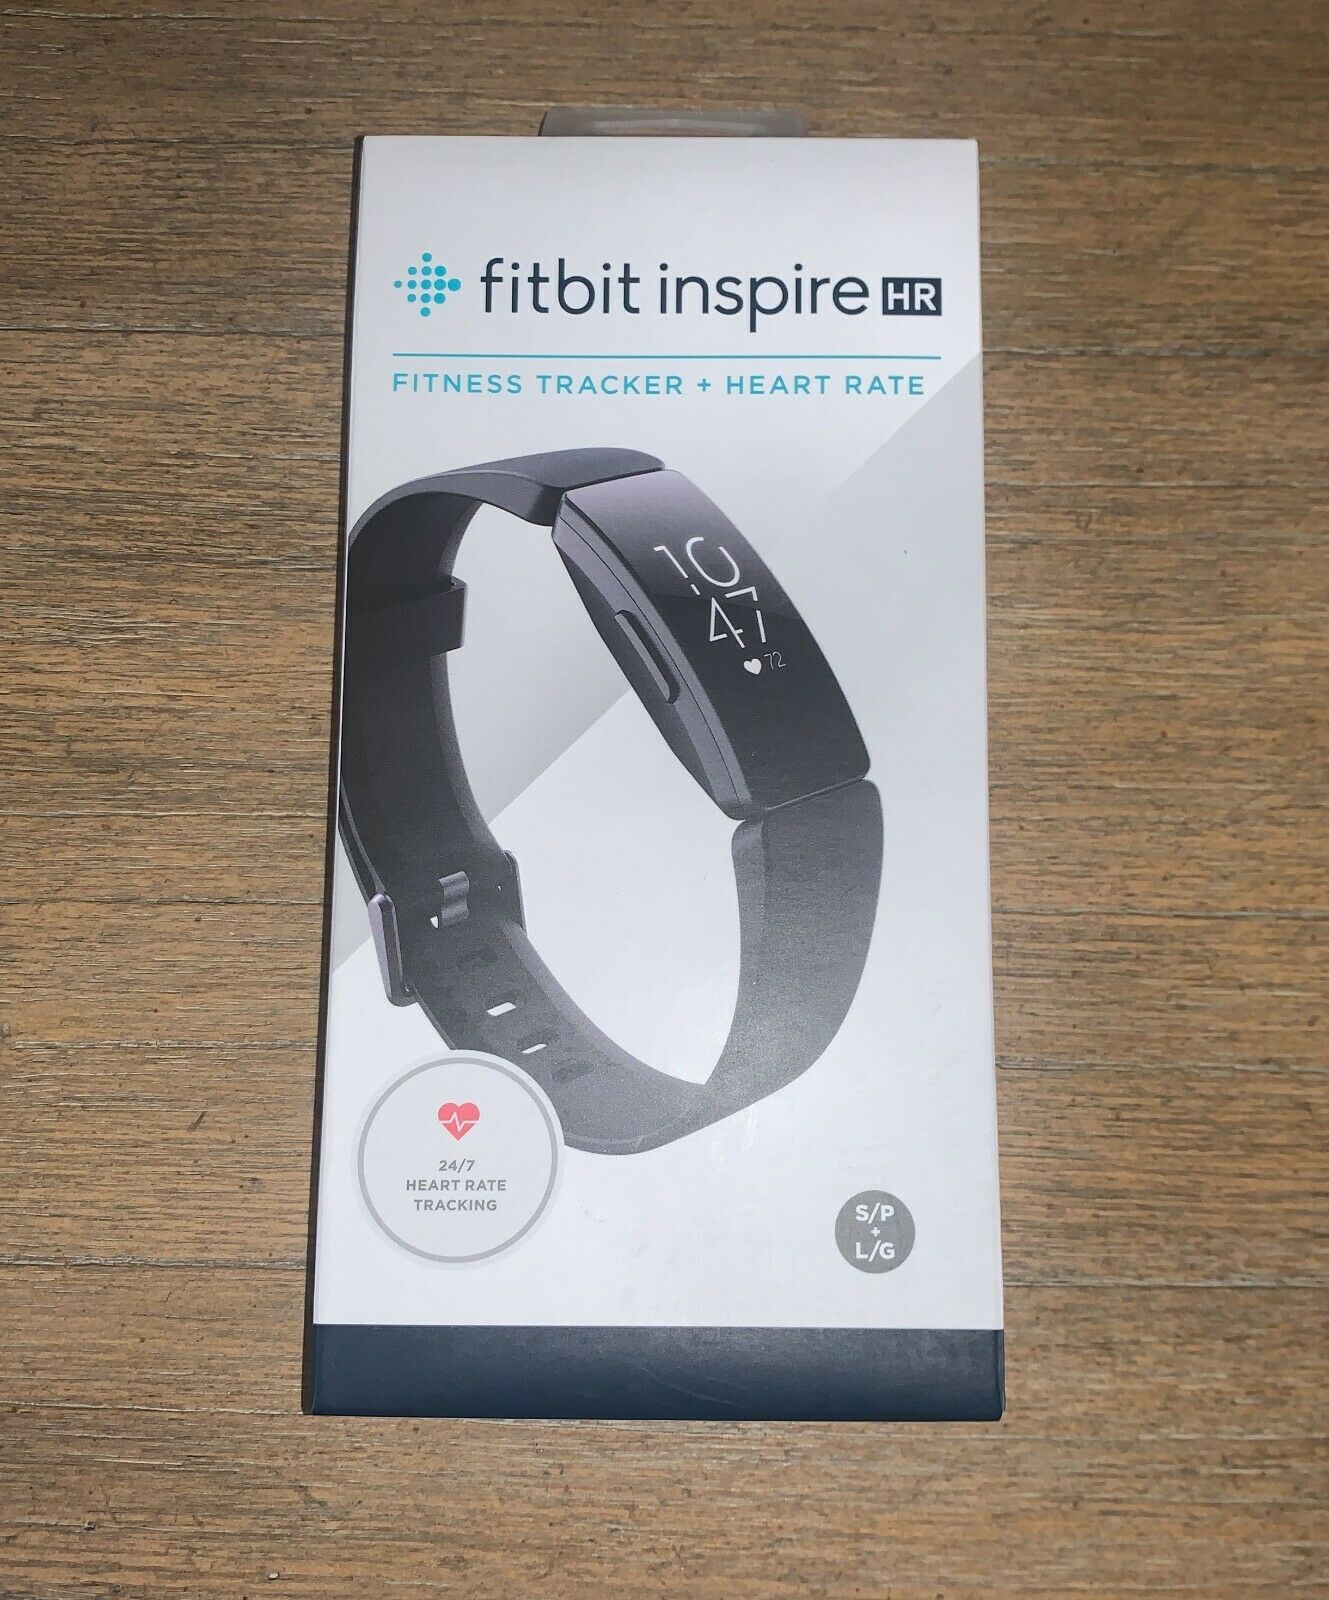 Fitbit Inspire HR Fitness Tracker + Heart Rate Black Factory Sealed NEW black factory fitbit fitness heart inspire new rate sealed tracker